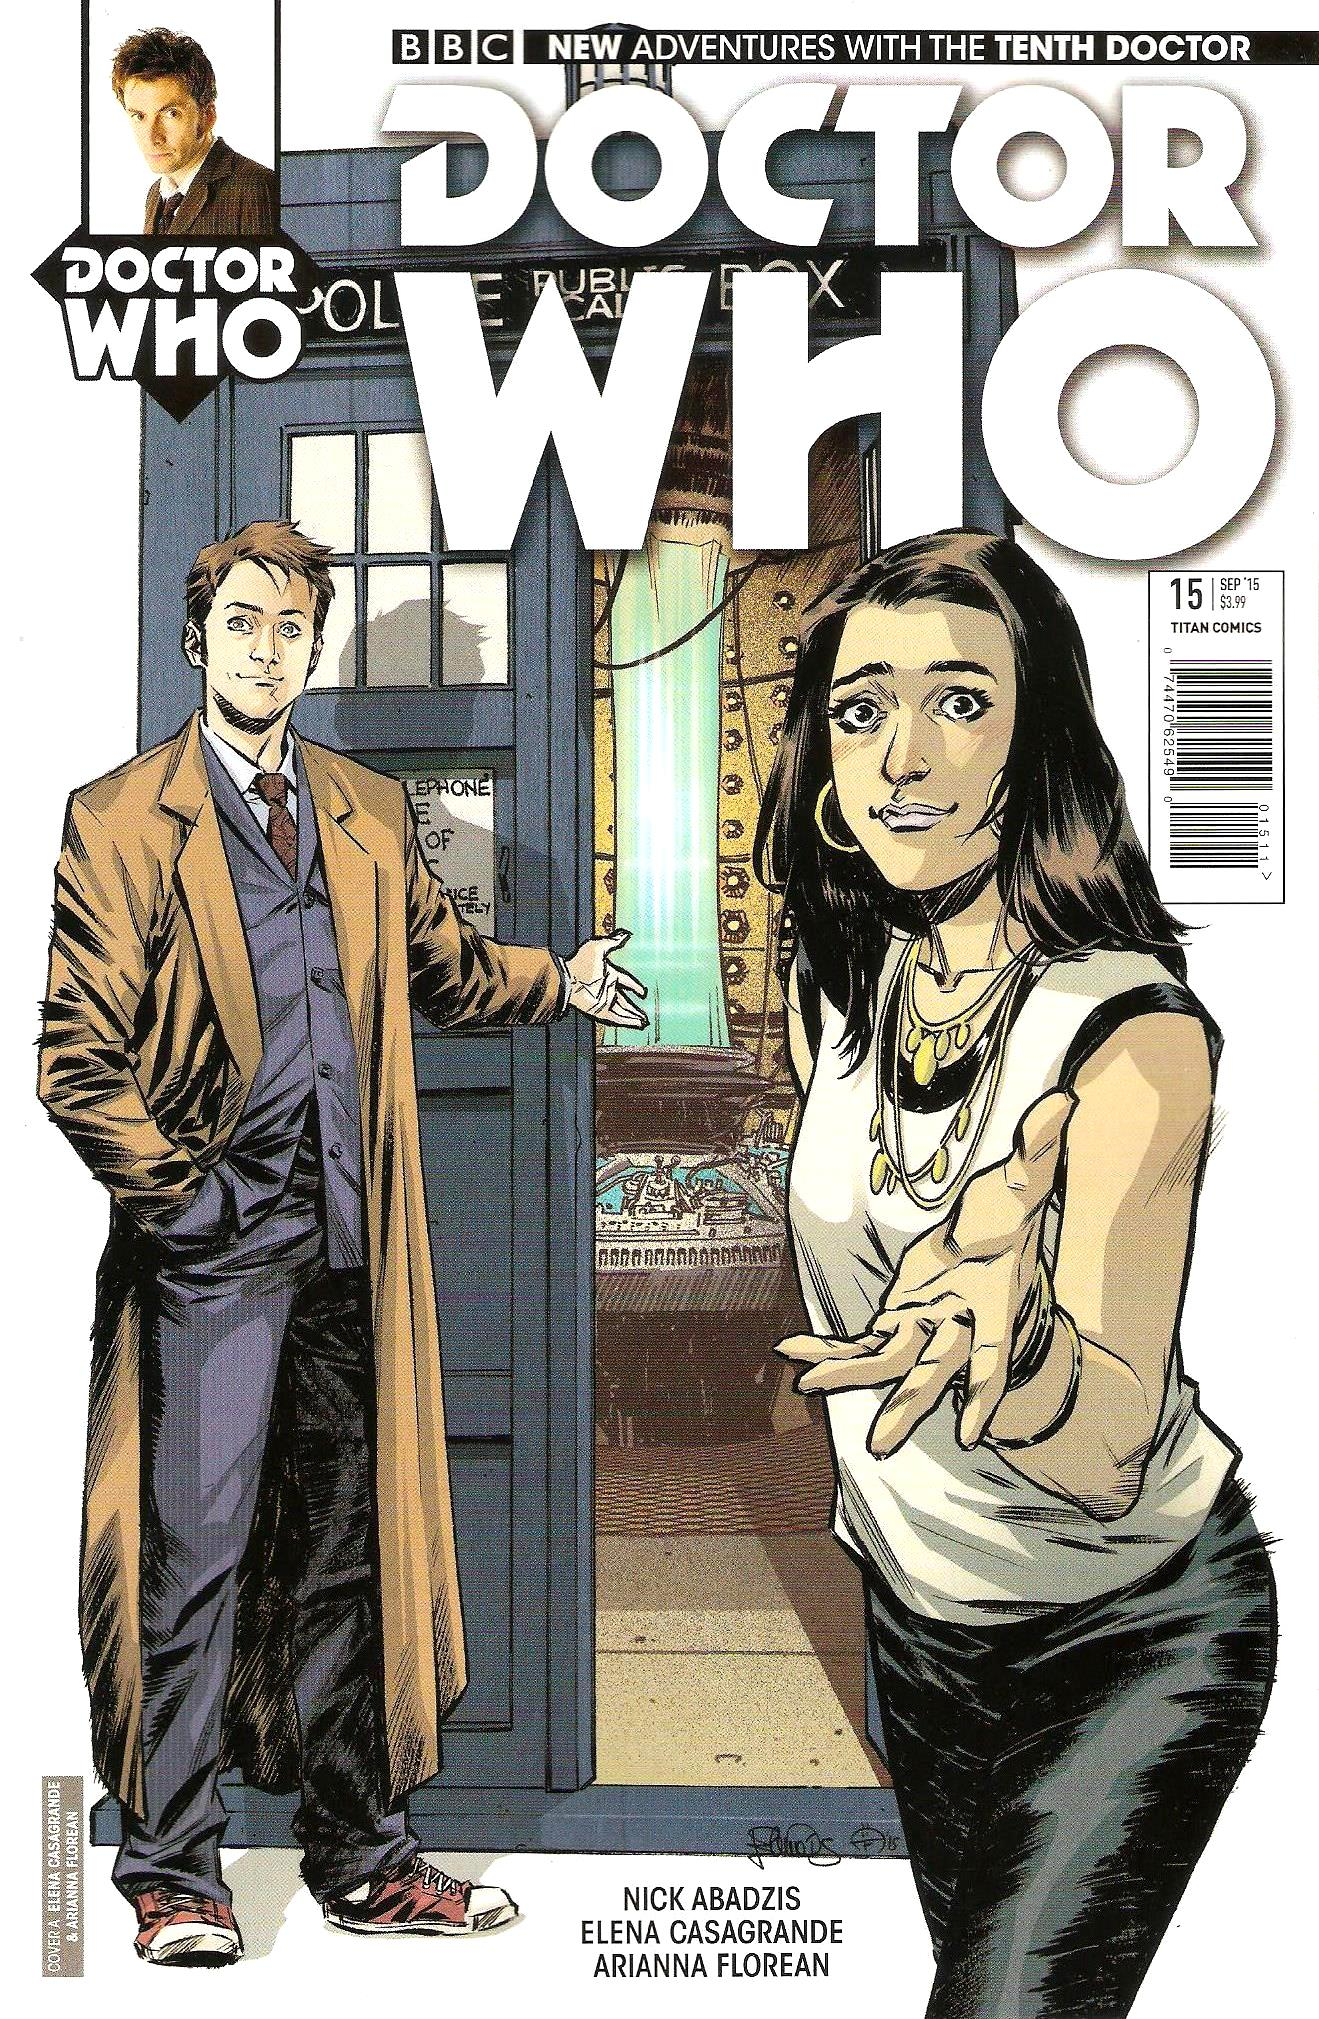 Tenth doctor issue 15a